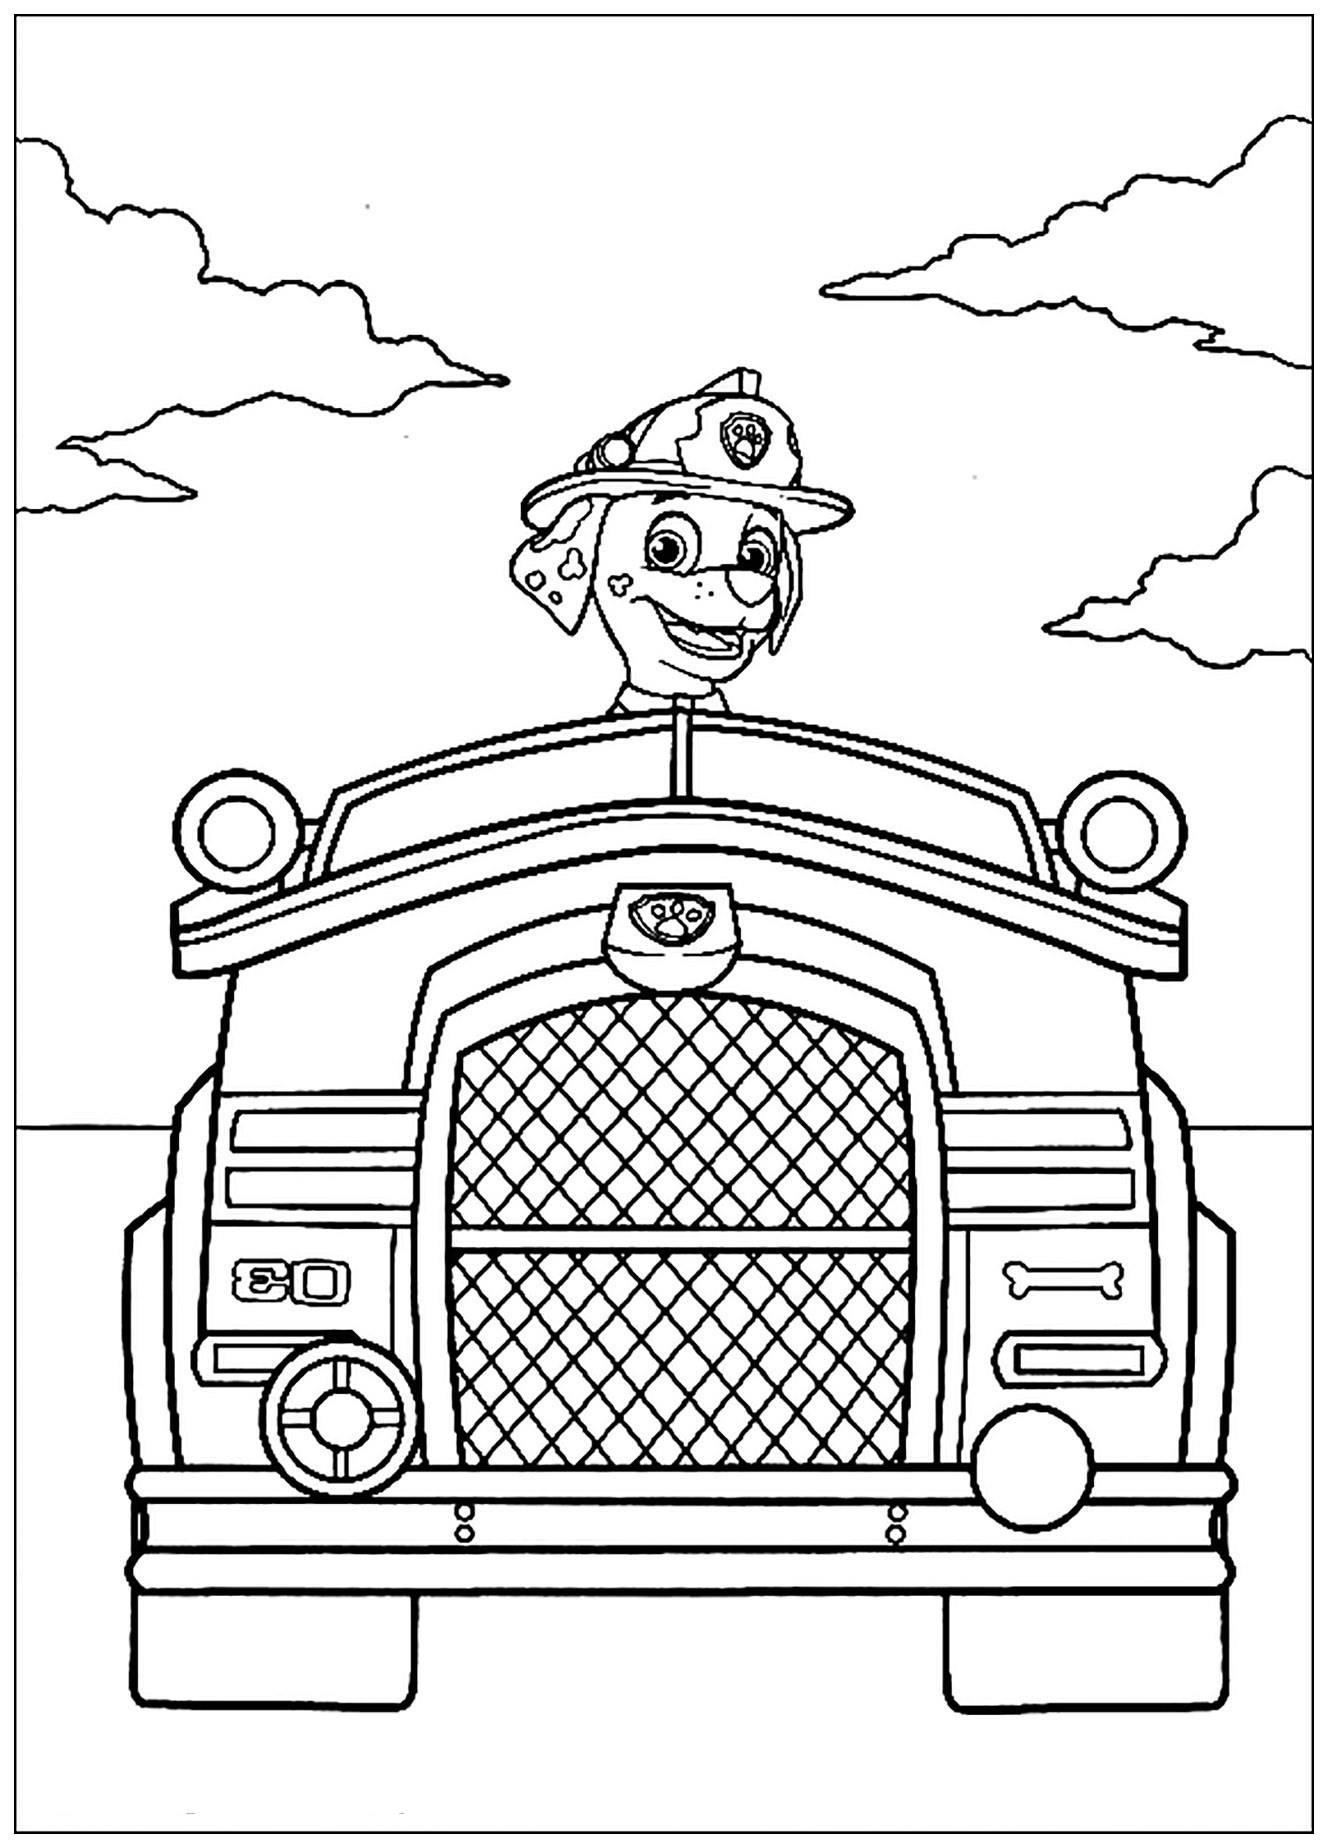 Paw Patrol coloring page to download